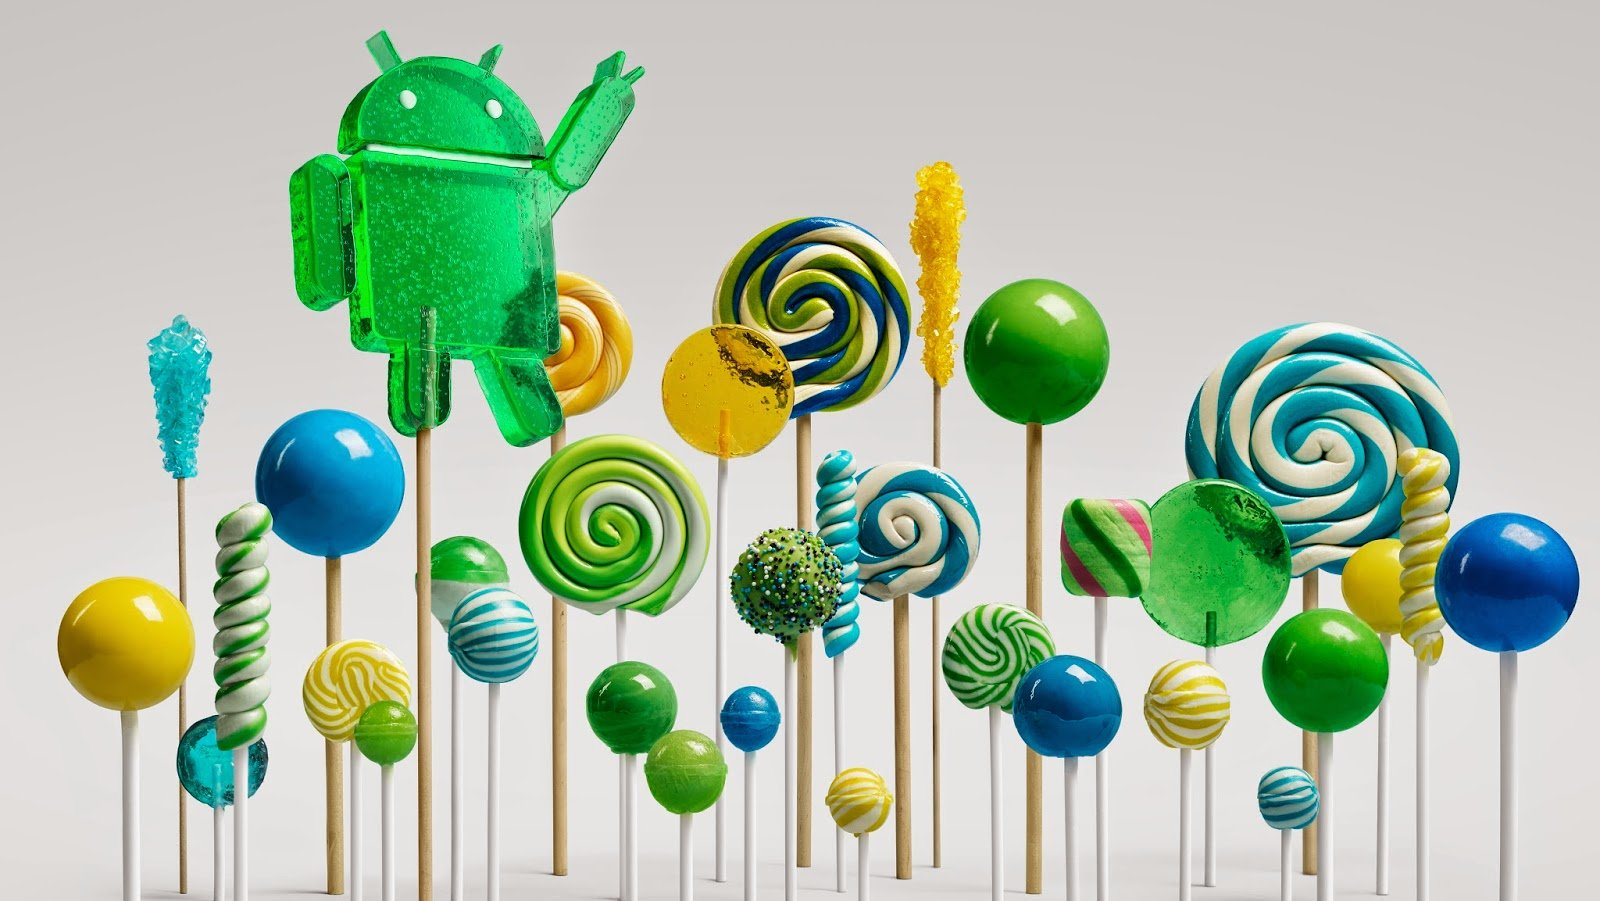 Android 5.0 Lollipop Ufficiale